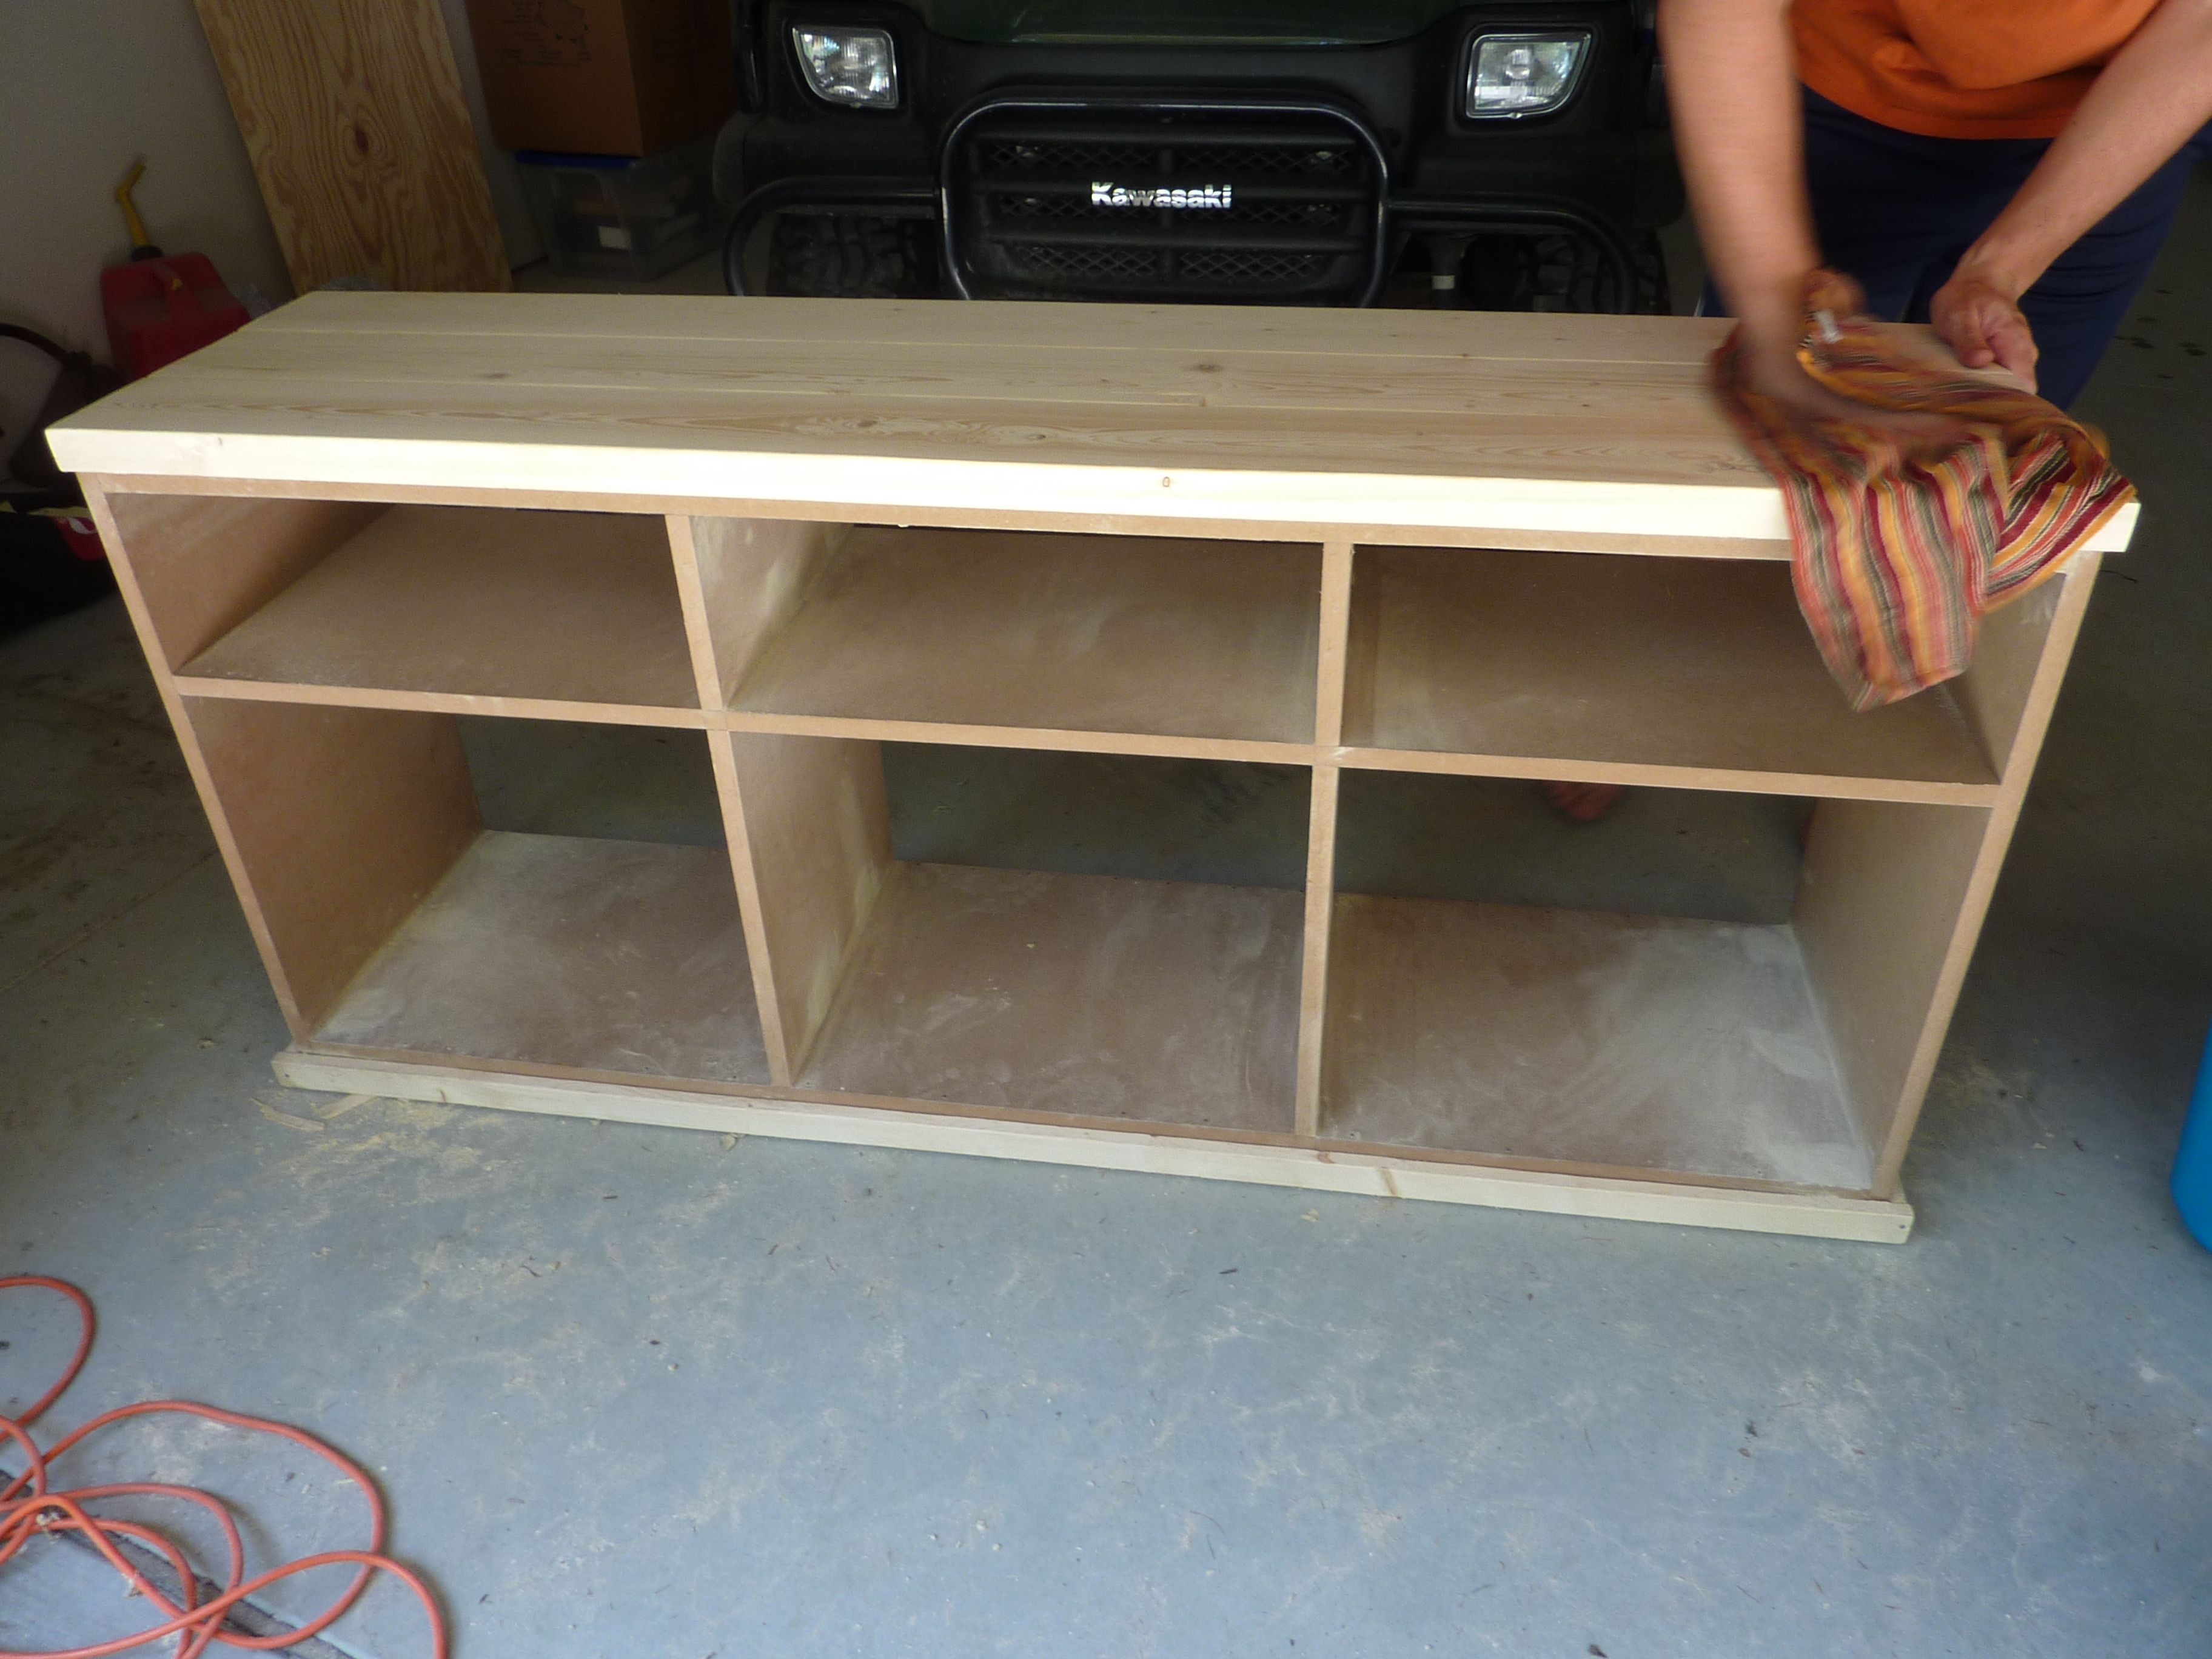 Build A Tv Stand Plans Tv Stands And Entertainment Centers Free Woodworking Plans And Projects Instructions To Bui Tv Stand Plans Build A Tv Stand Diy Tv Stand